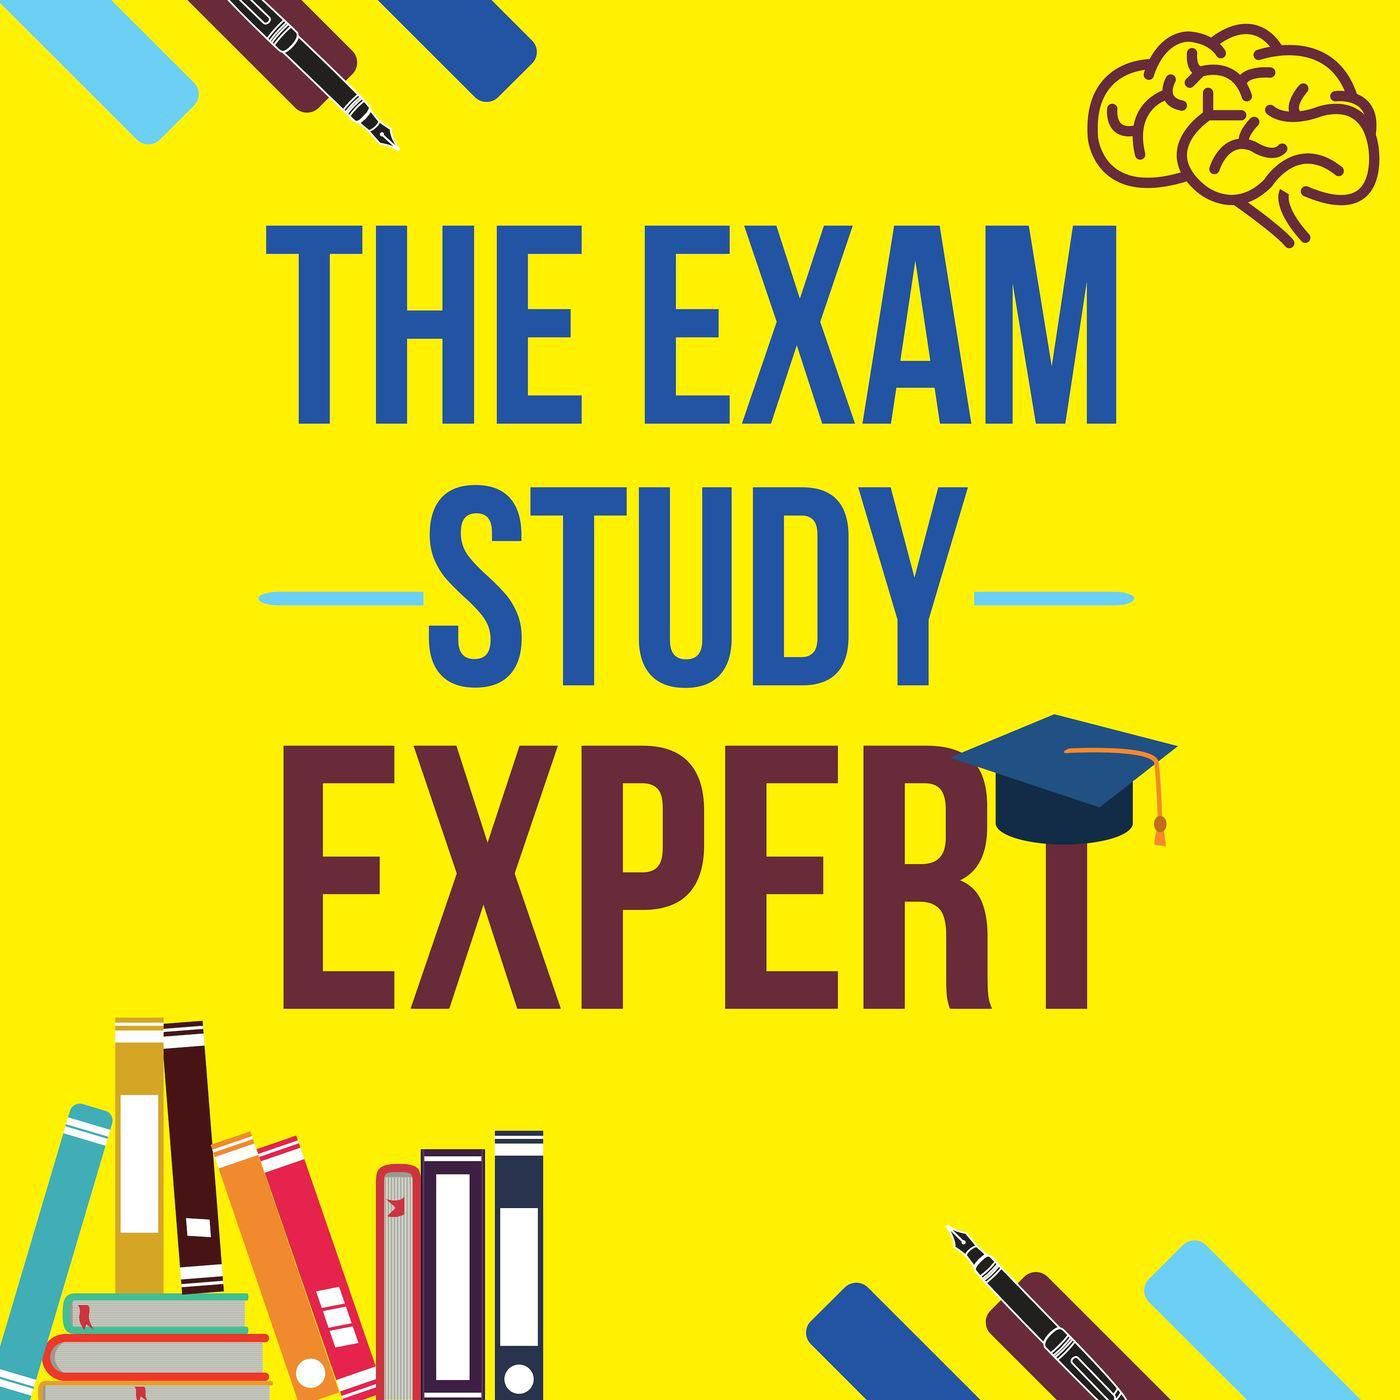 Exam Study Expert: study tips and psychology hacks to learn